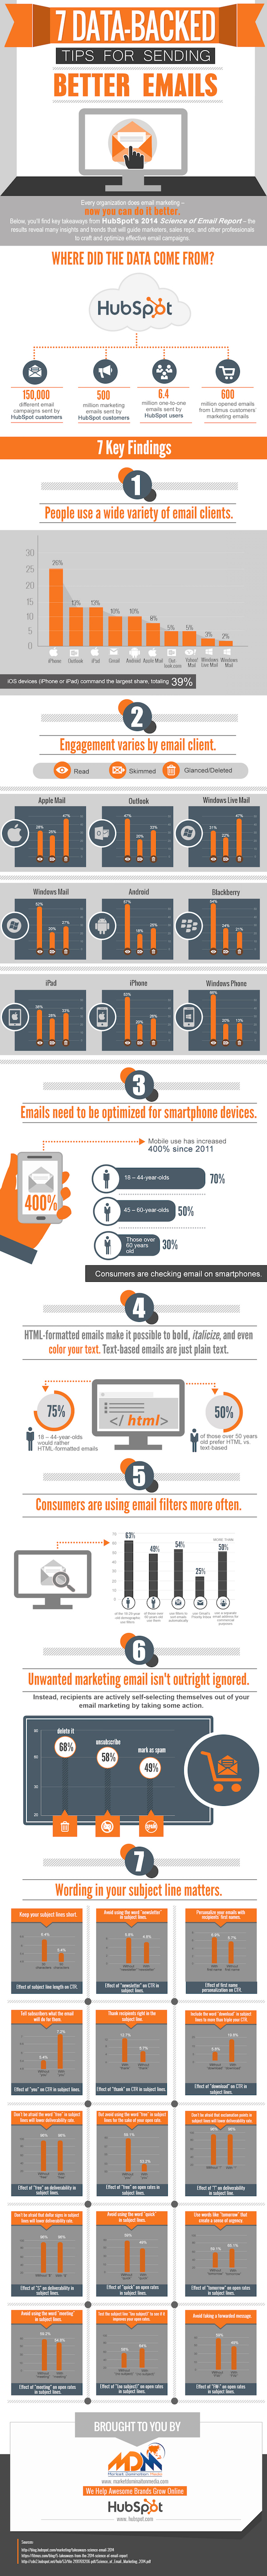 Improve-Your-Email-Conversion-Rates-With-These-7-Tips-Infographic